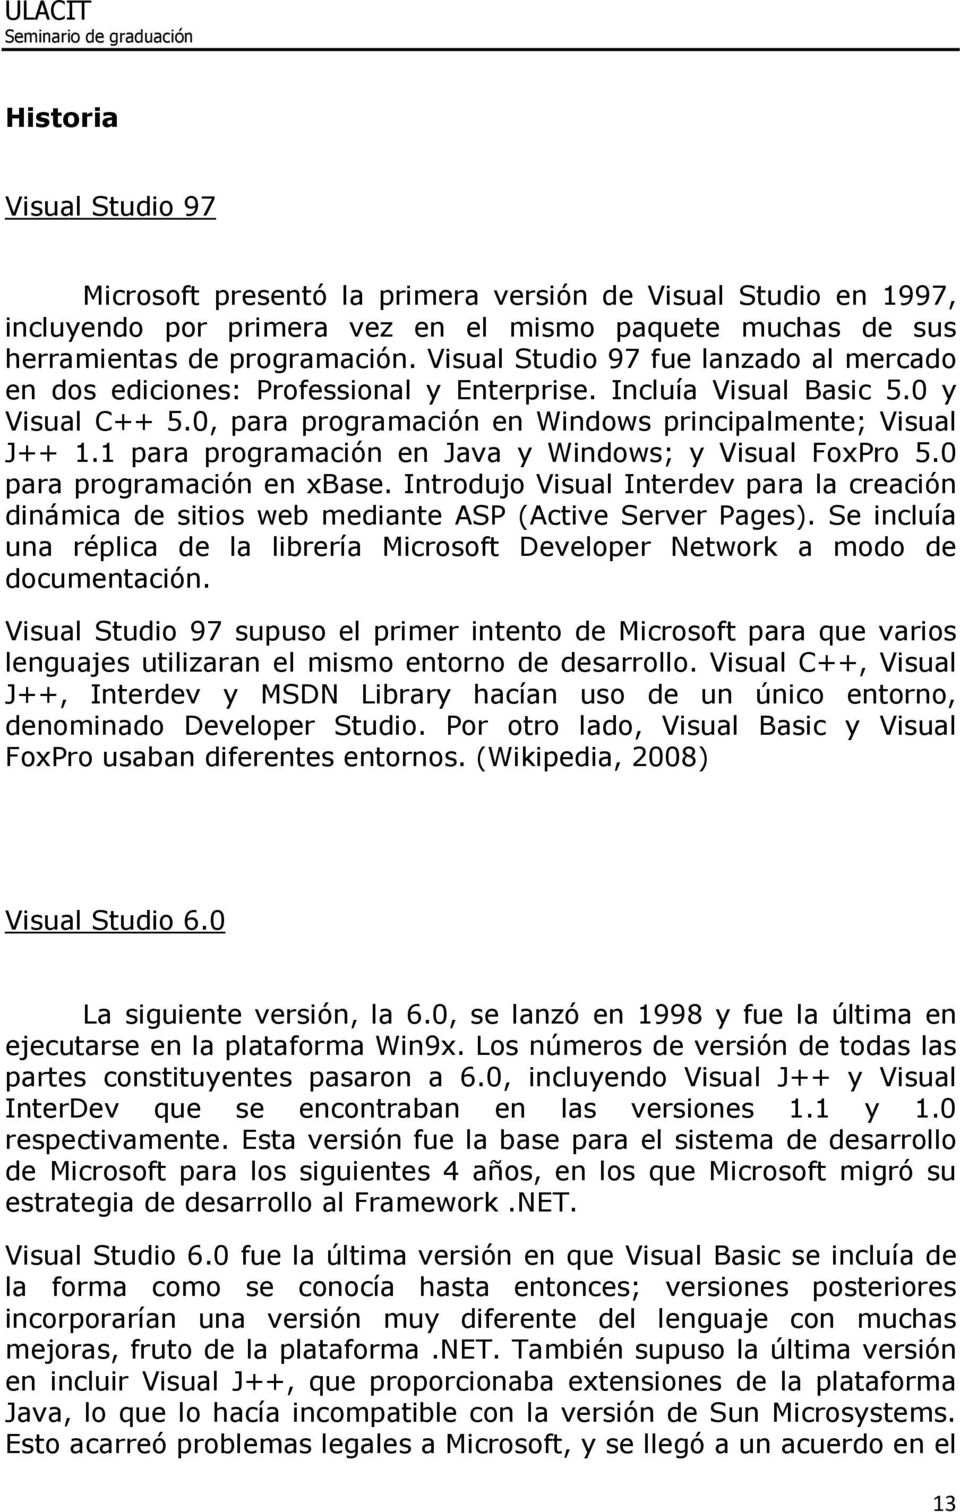 1 para programación en Java y Windows; y Visual FoxPro 5.0 para programación en xbase. Introdujo Visual Interdev para la creación dinámica de sitios web mediante ASP (Active Server Pages).